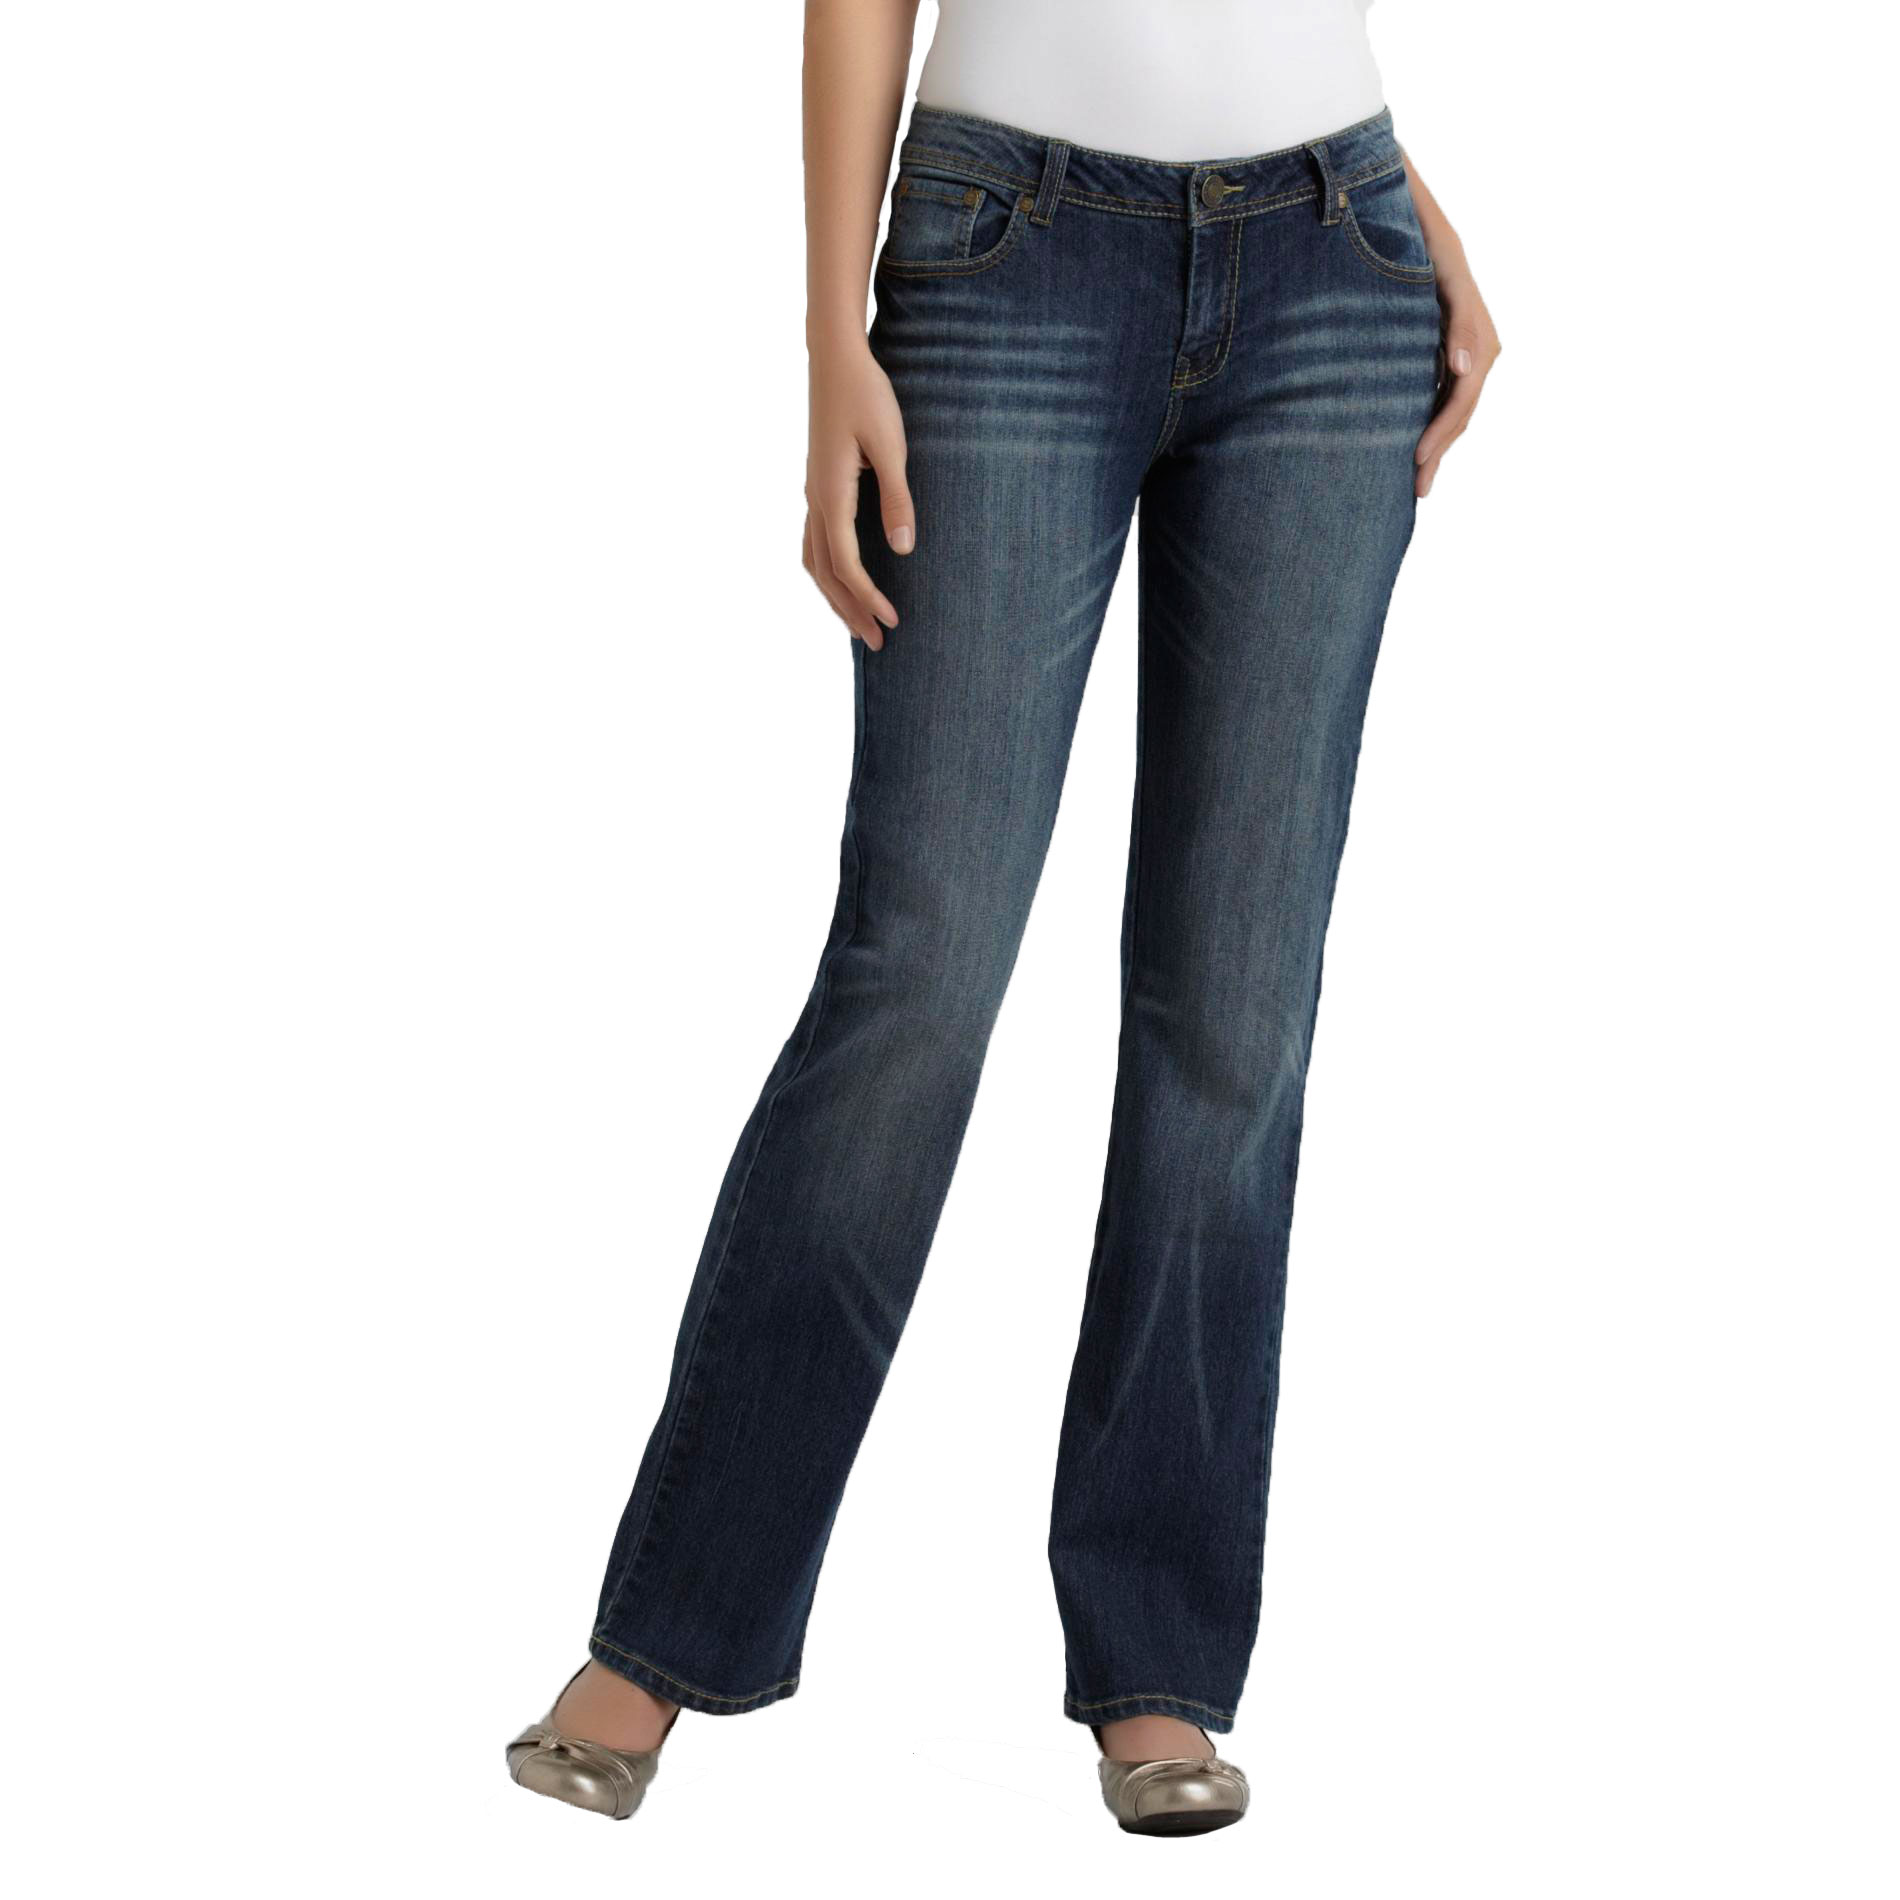 Canyon River Blues Women' Curvy Skinny Jeans - Clothing